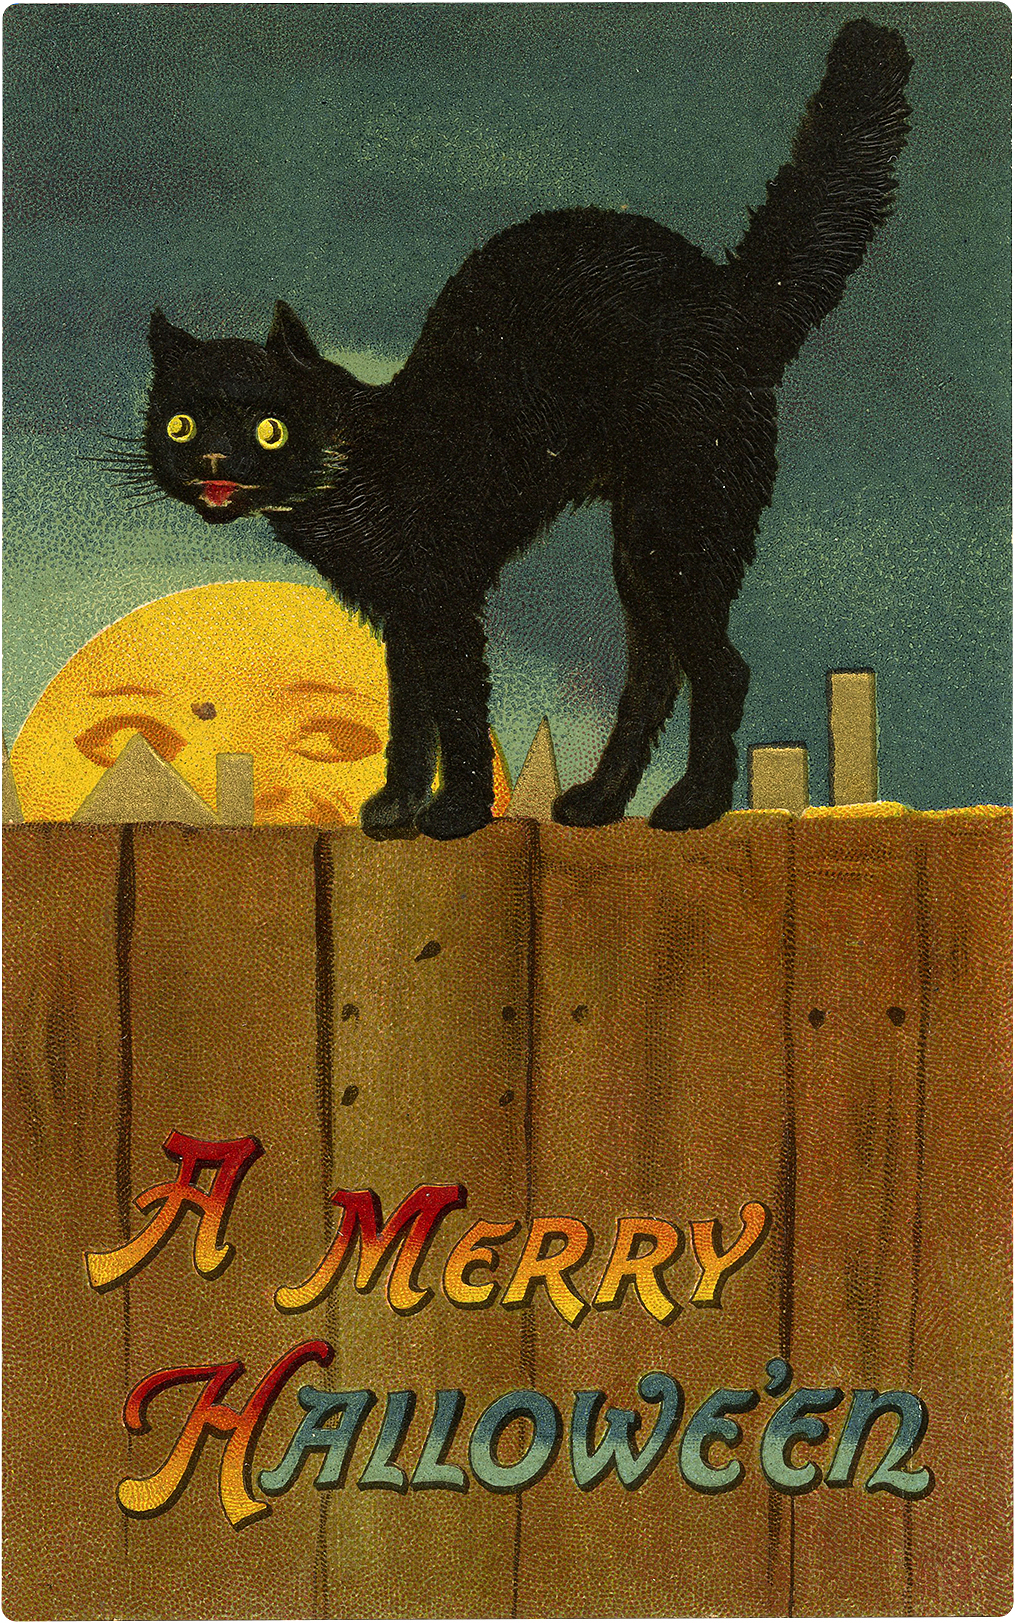 Retro Scary Black Cat On Fence Halloween Image The